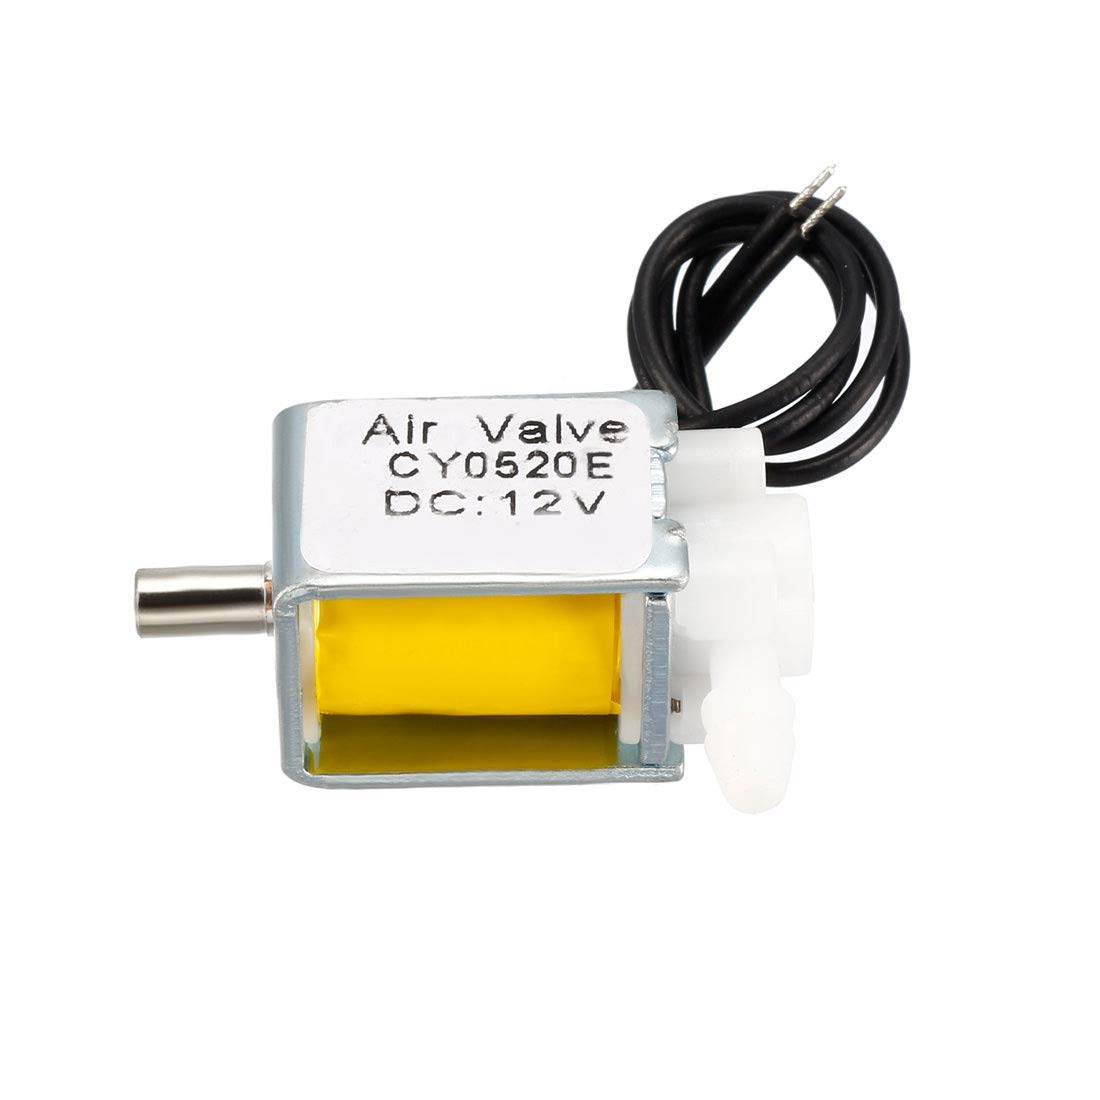 uxcell Miniature Solenoid Valve 2 Position 3 Way DC12V 0.2A Air Solenoid Valve